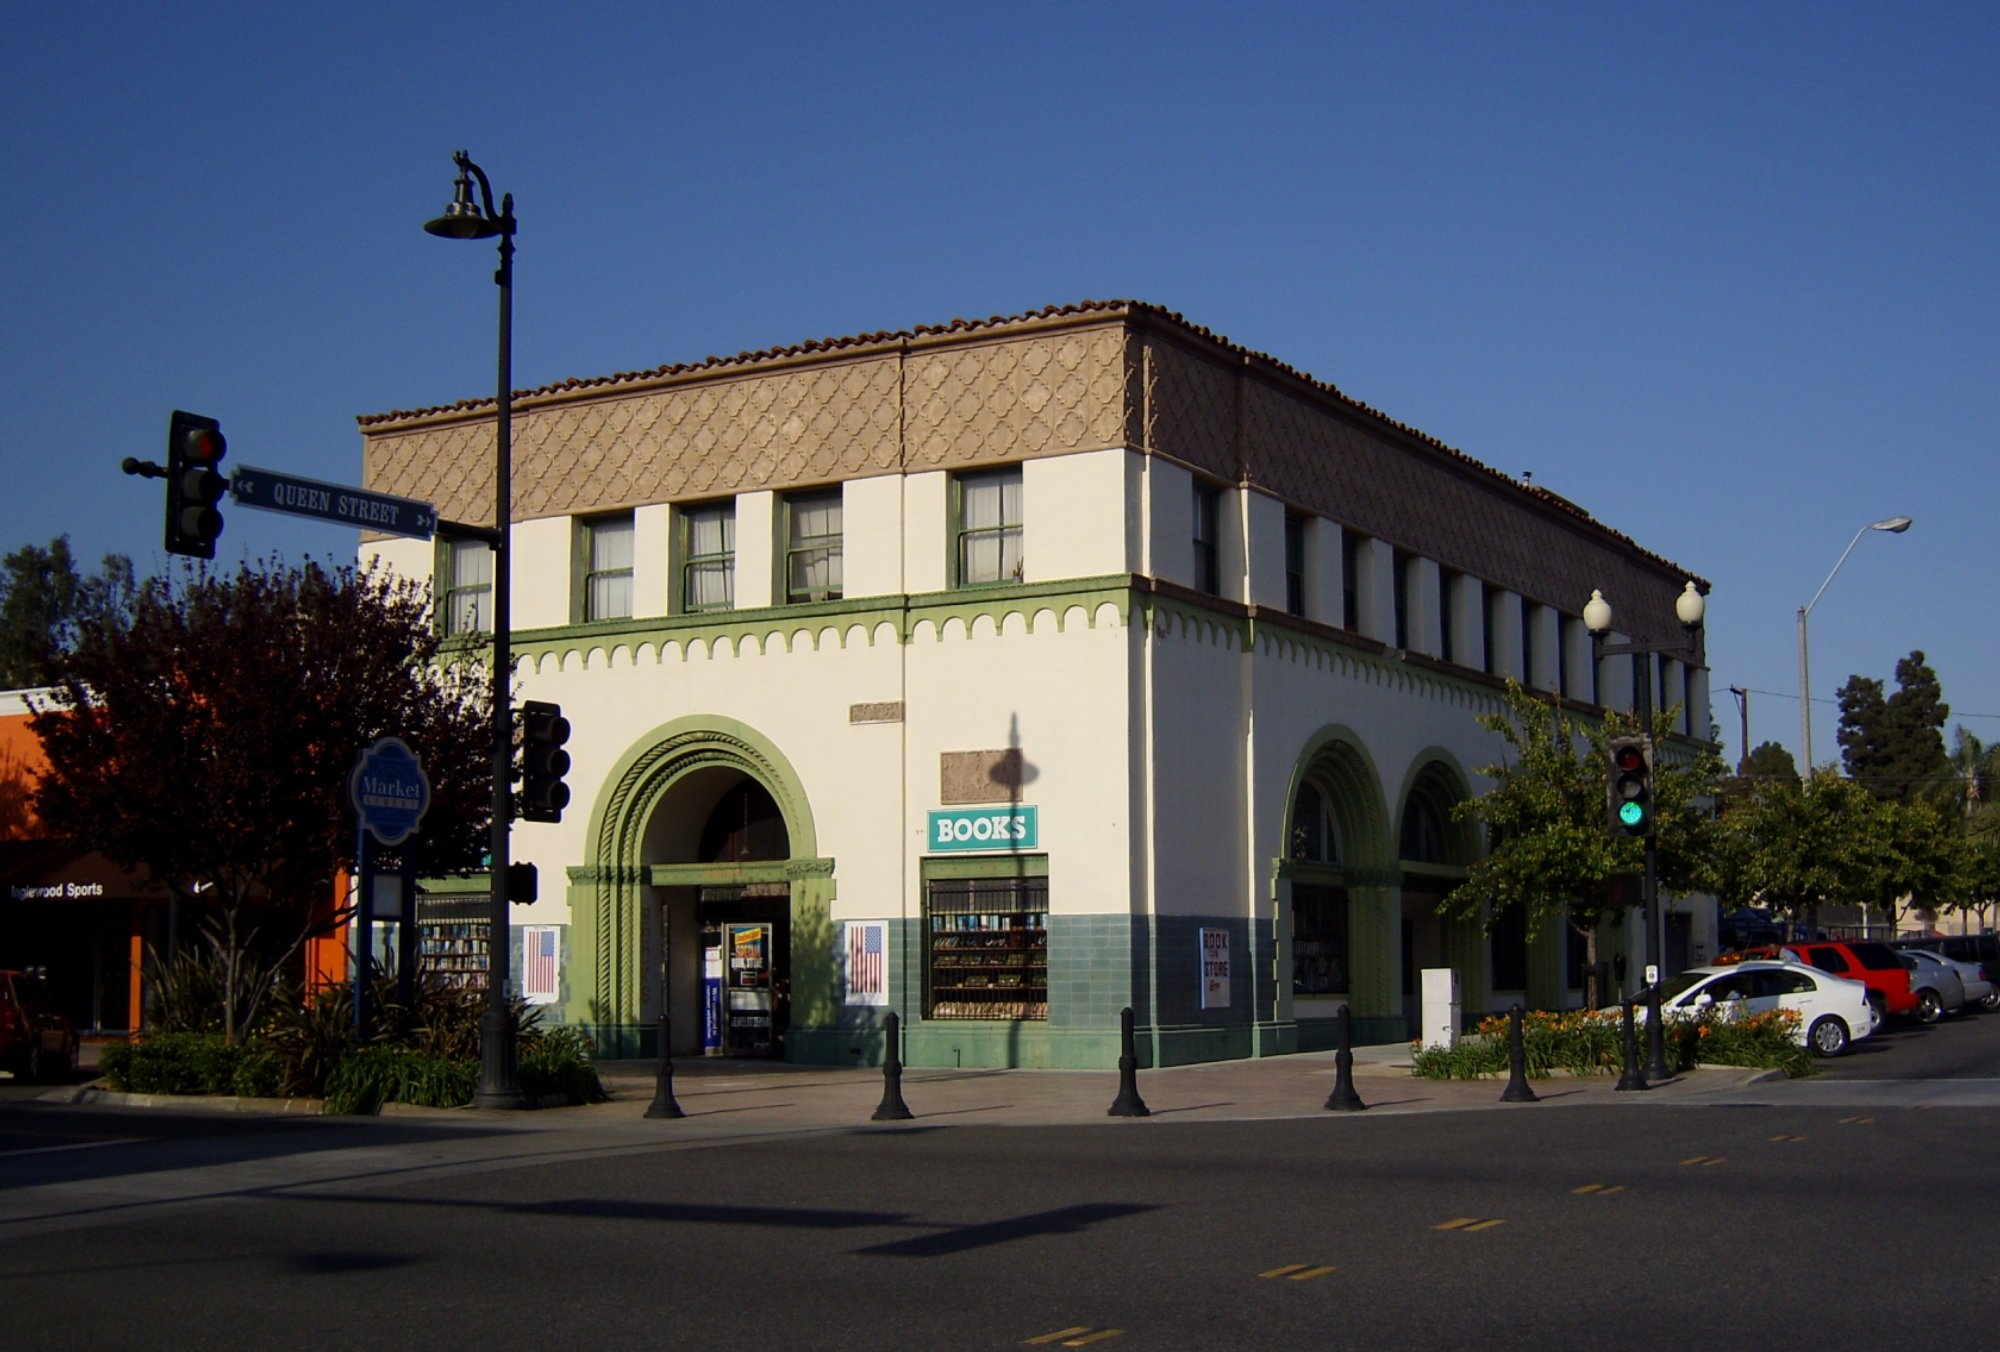 The Beautiful old Vajra Bookshop in Inglewood